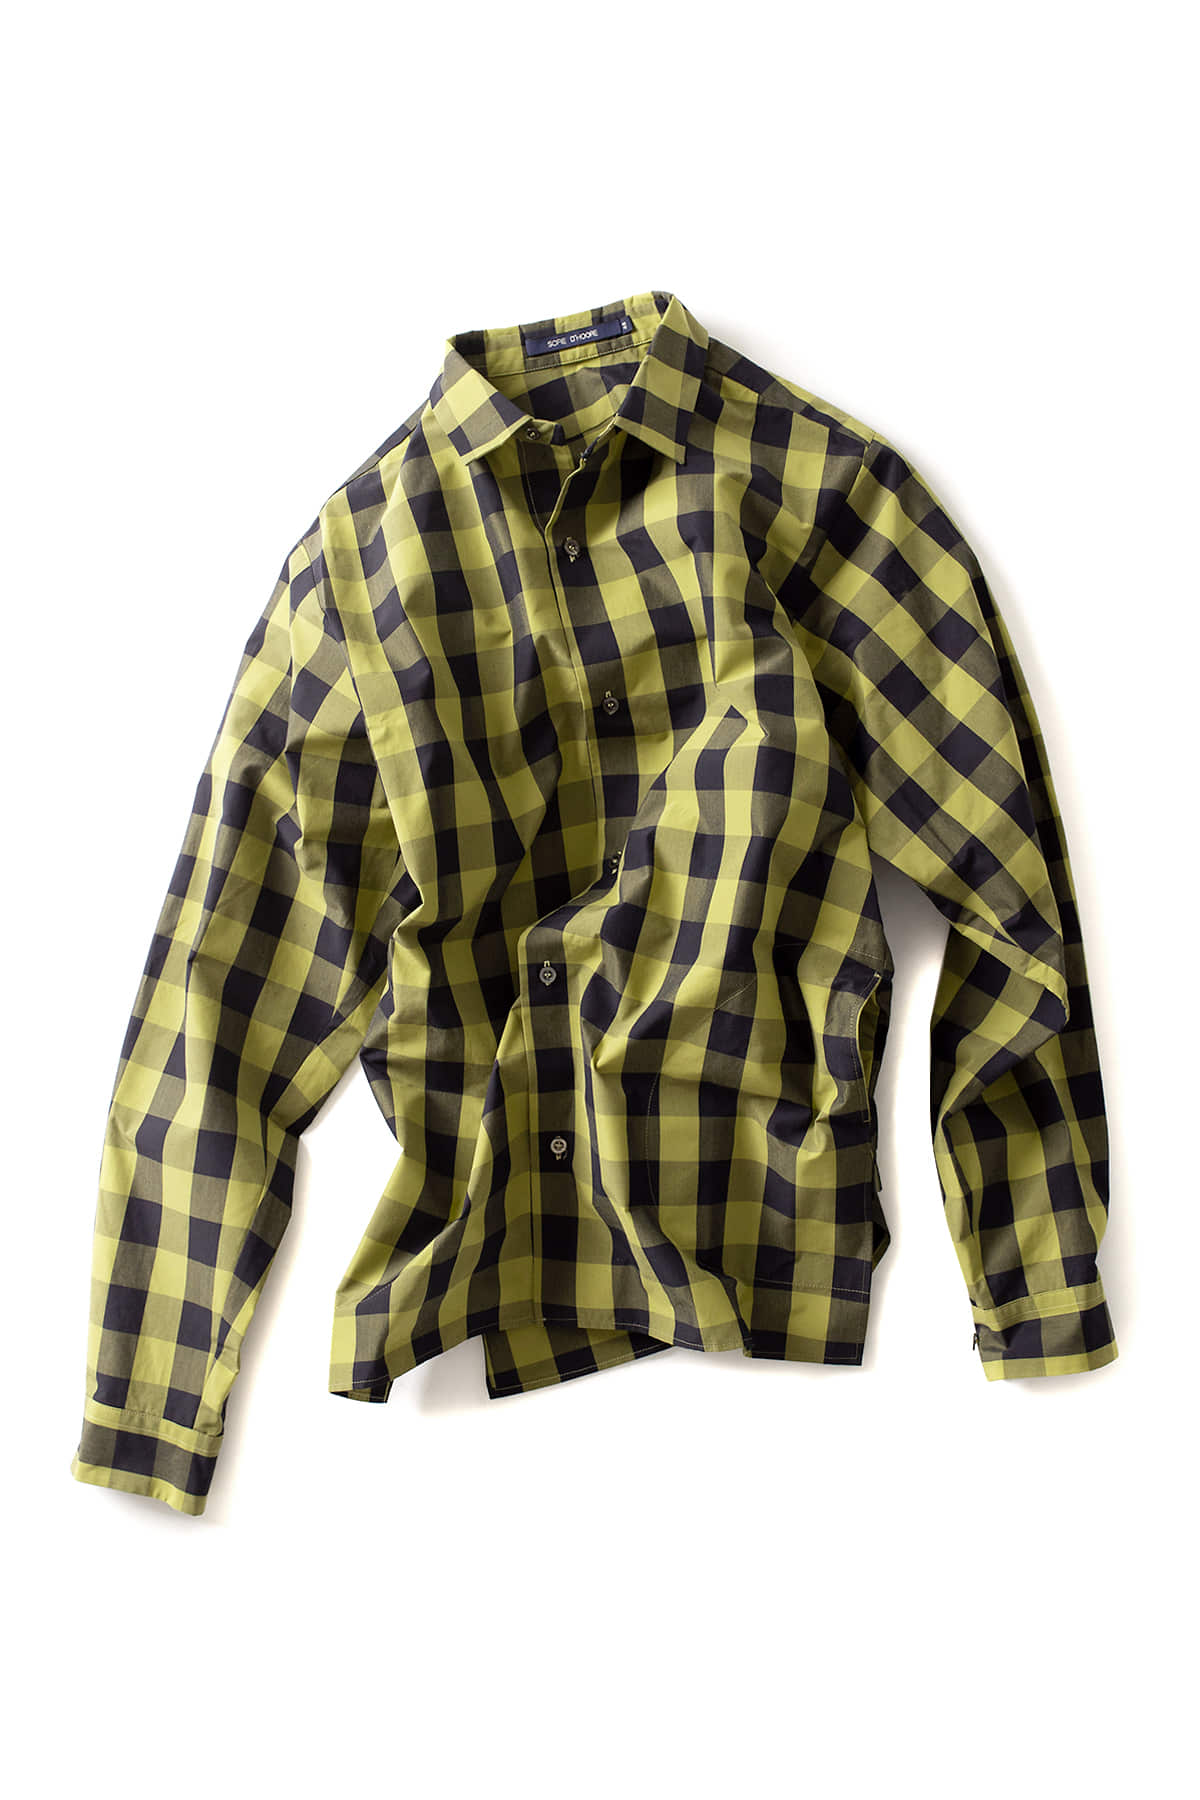 Sofie D'Hoore : LSLV Shirts With Side Slits (Olive)